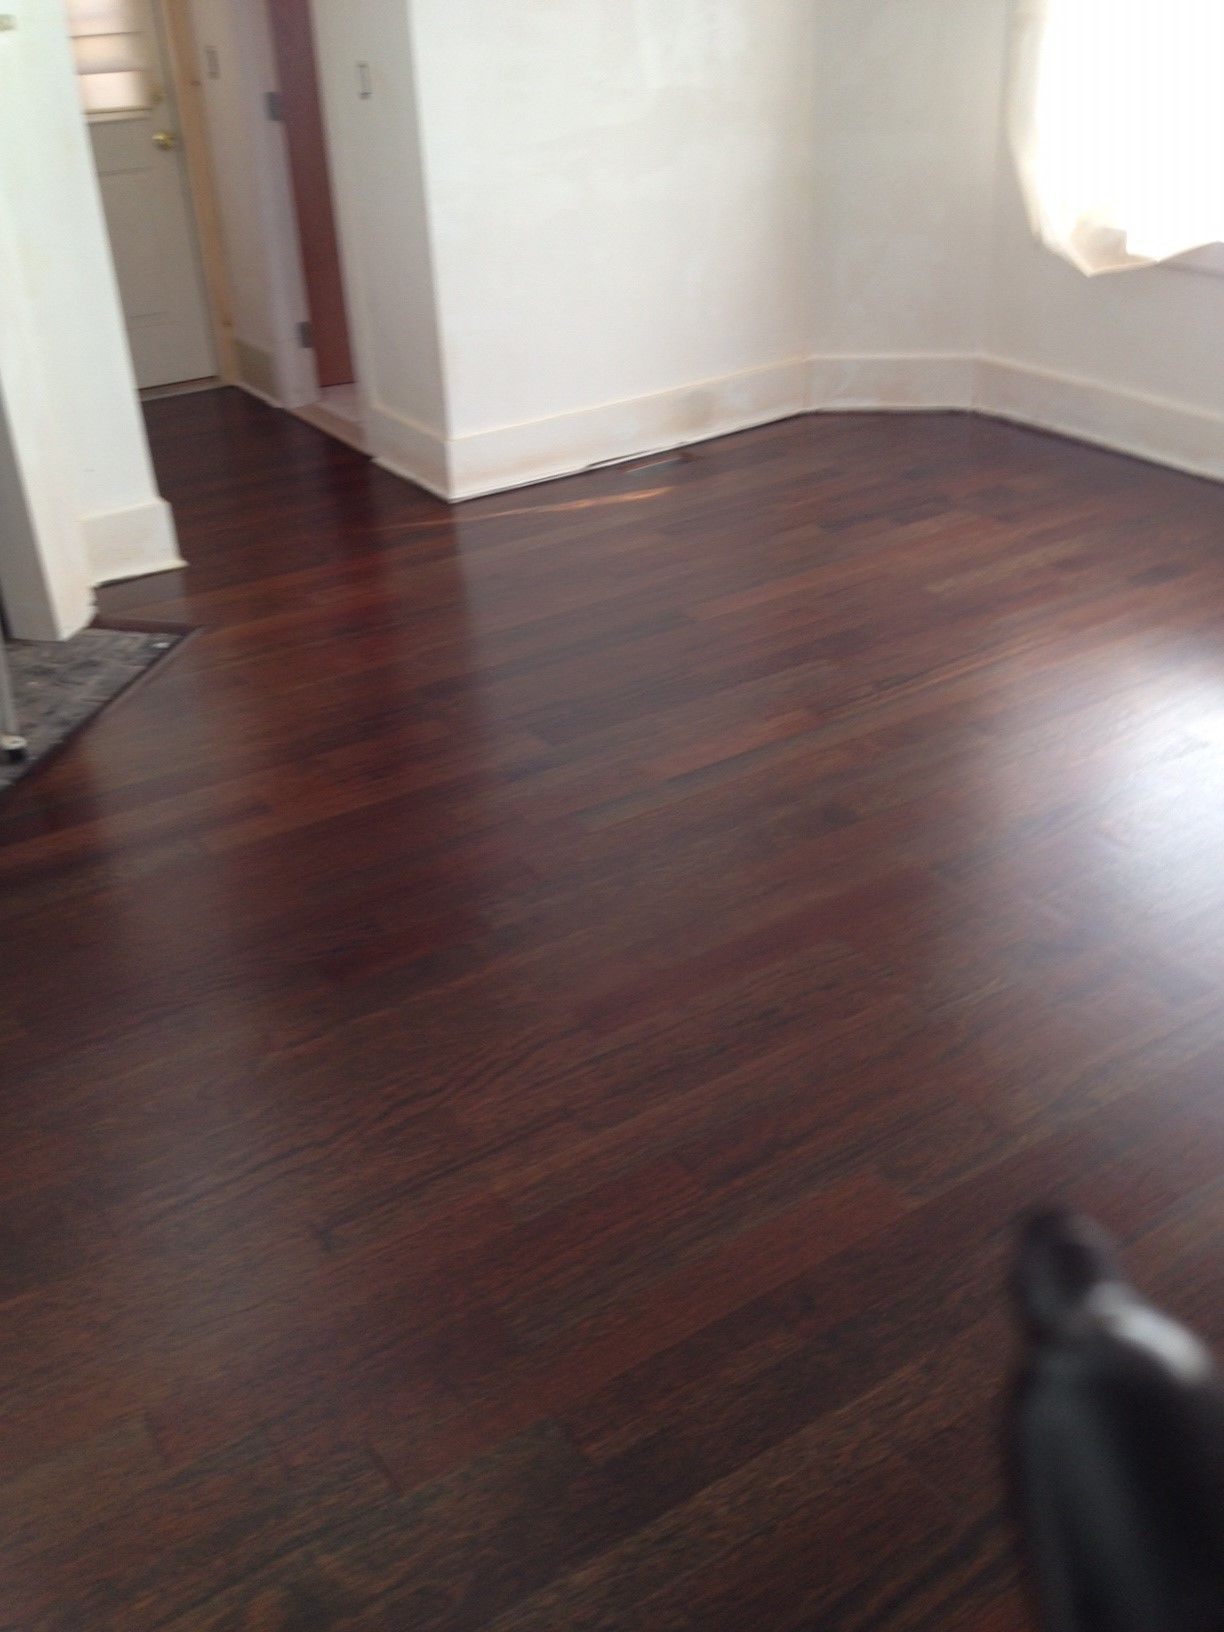 Hardwood floor refinishing for mn friends ready to get down to